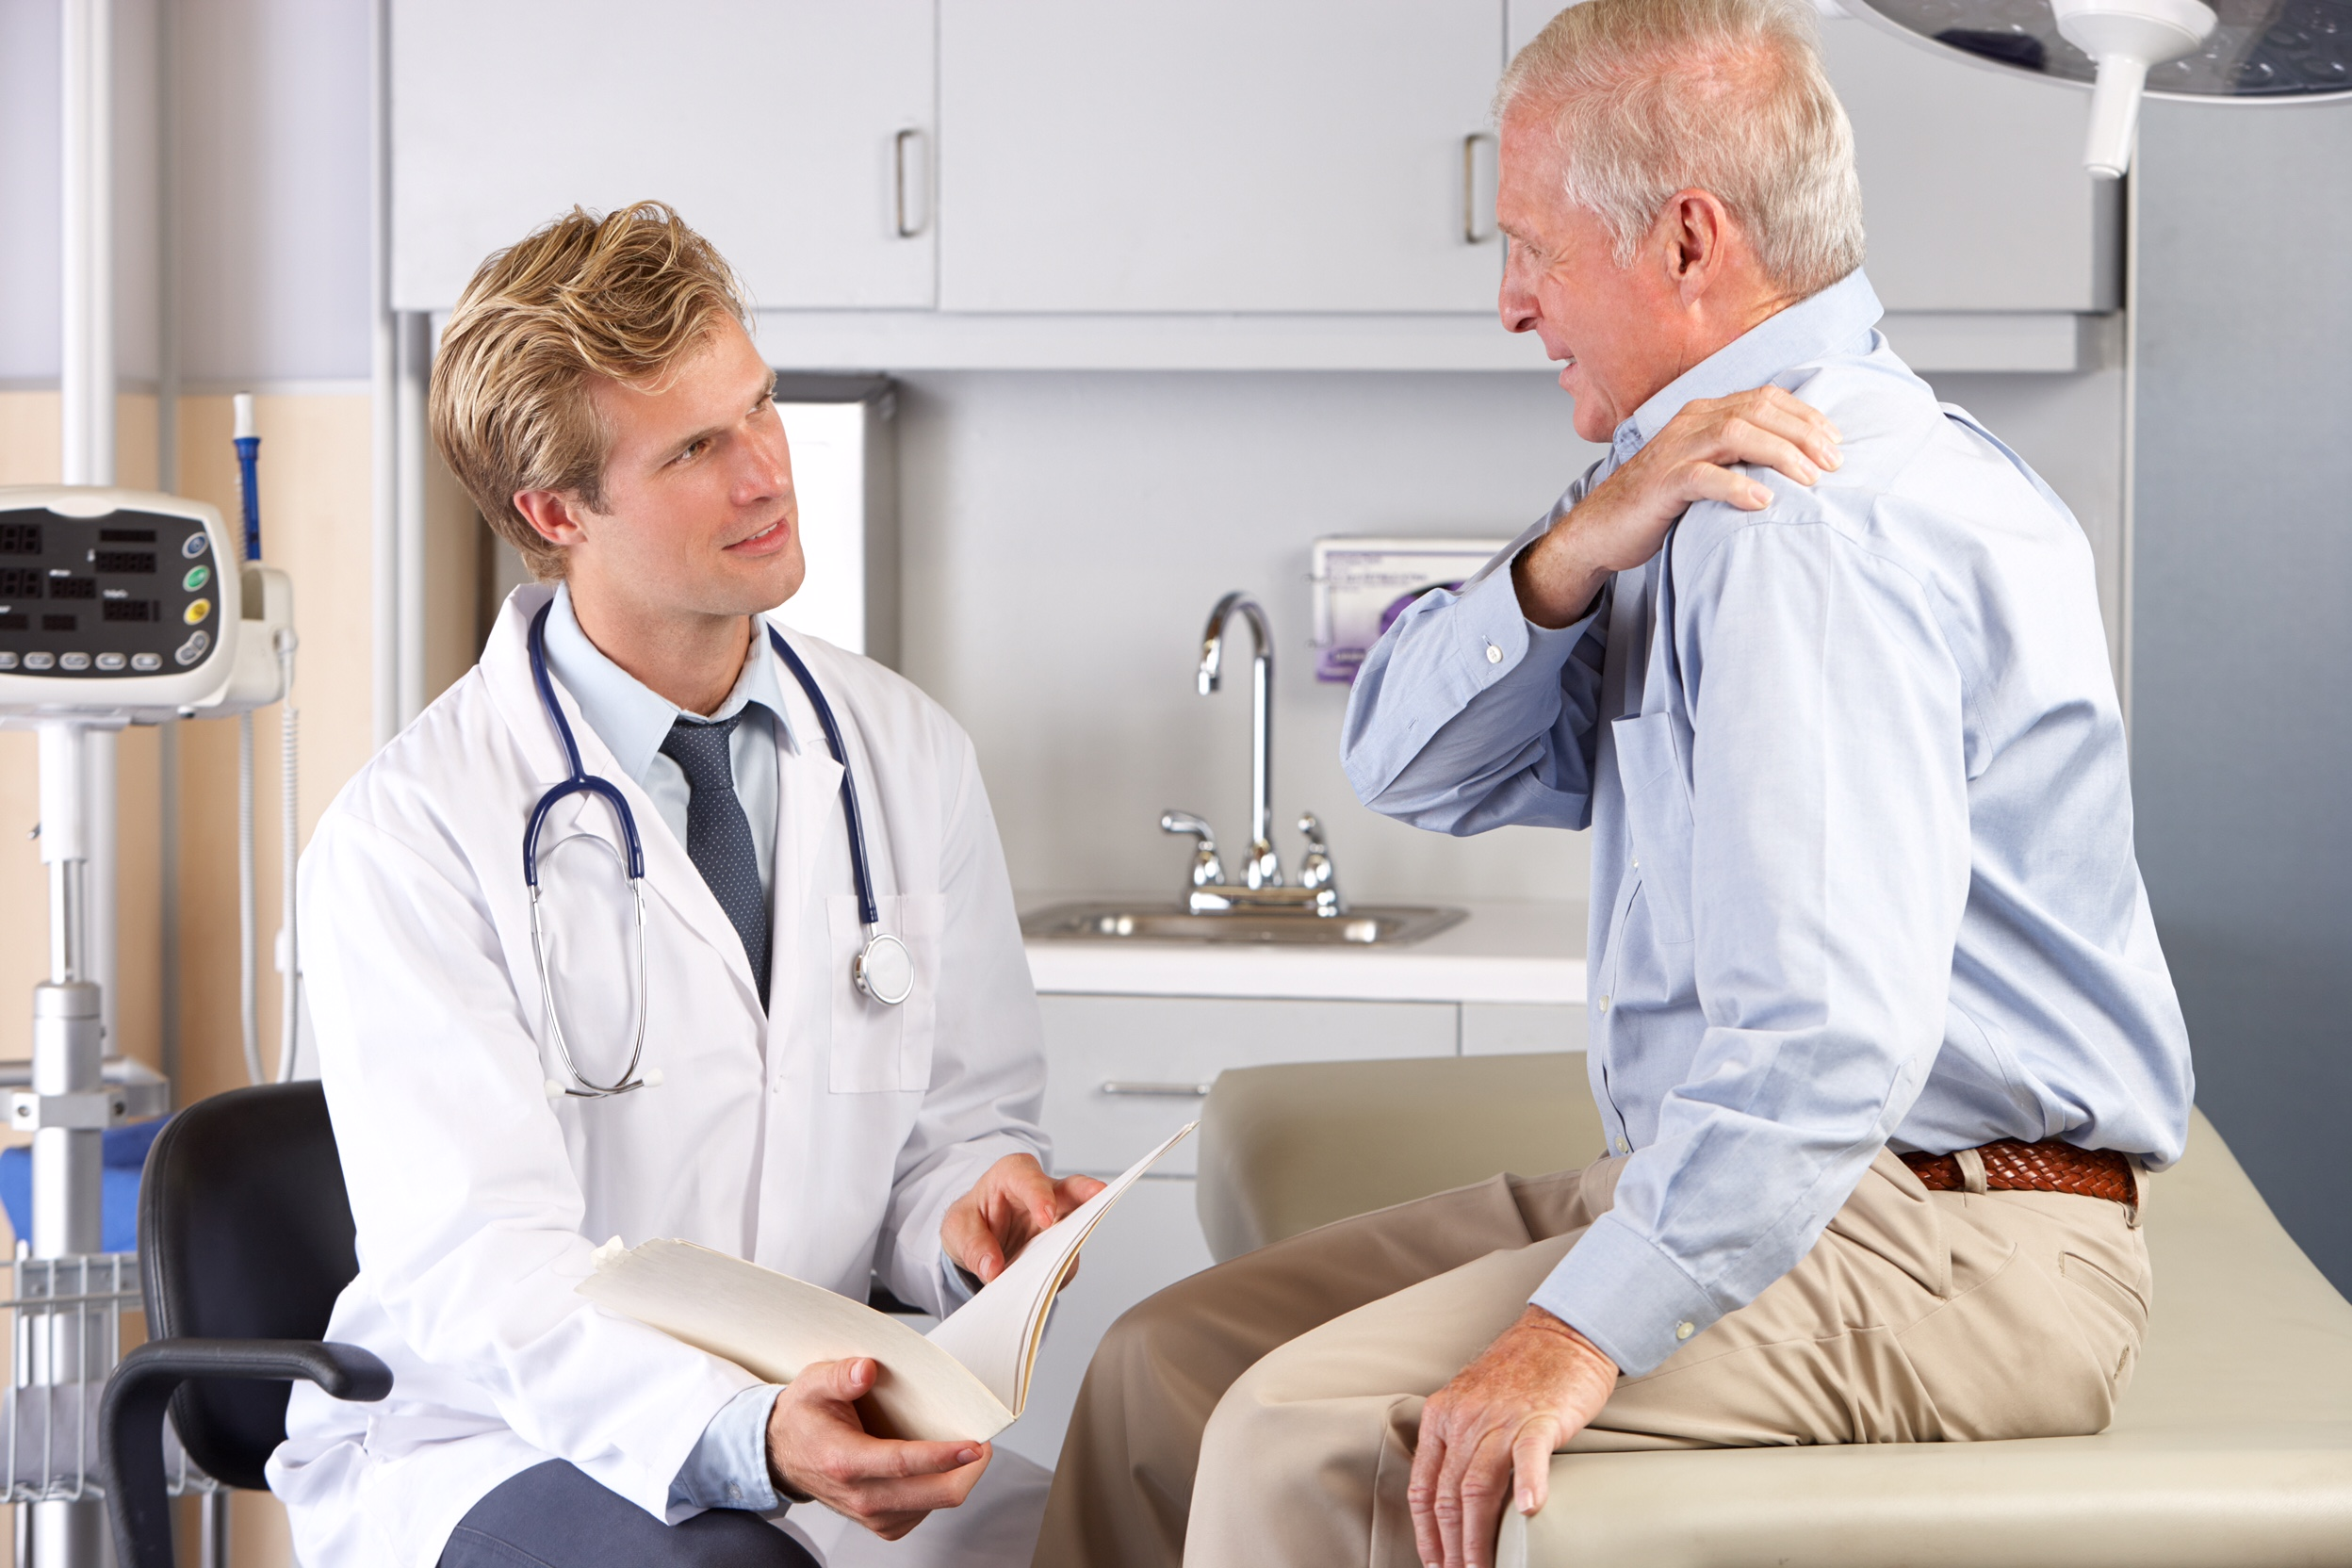 Man seeing doctor for shoulder pain